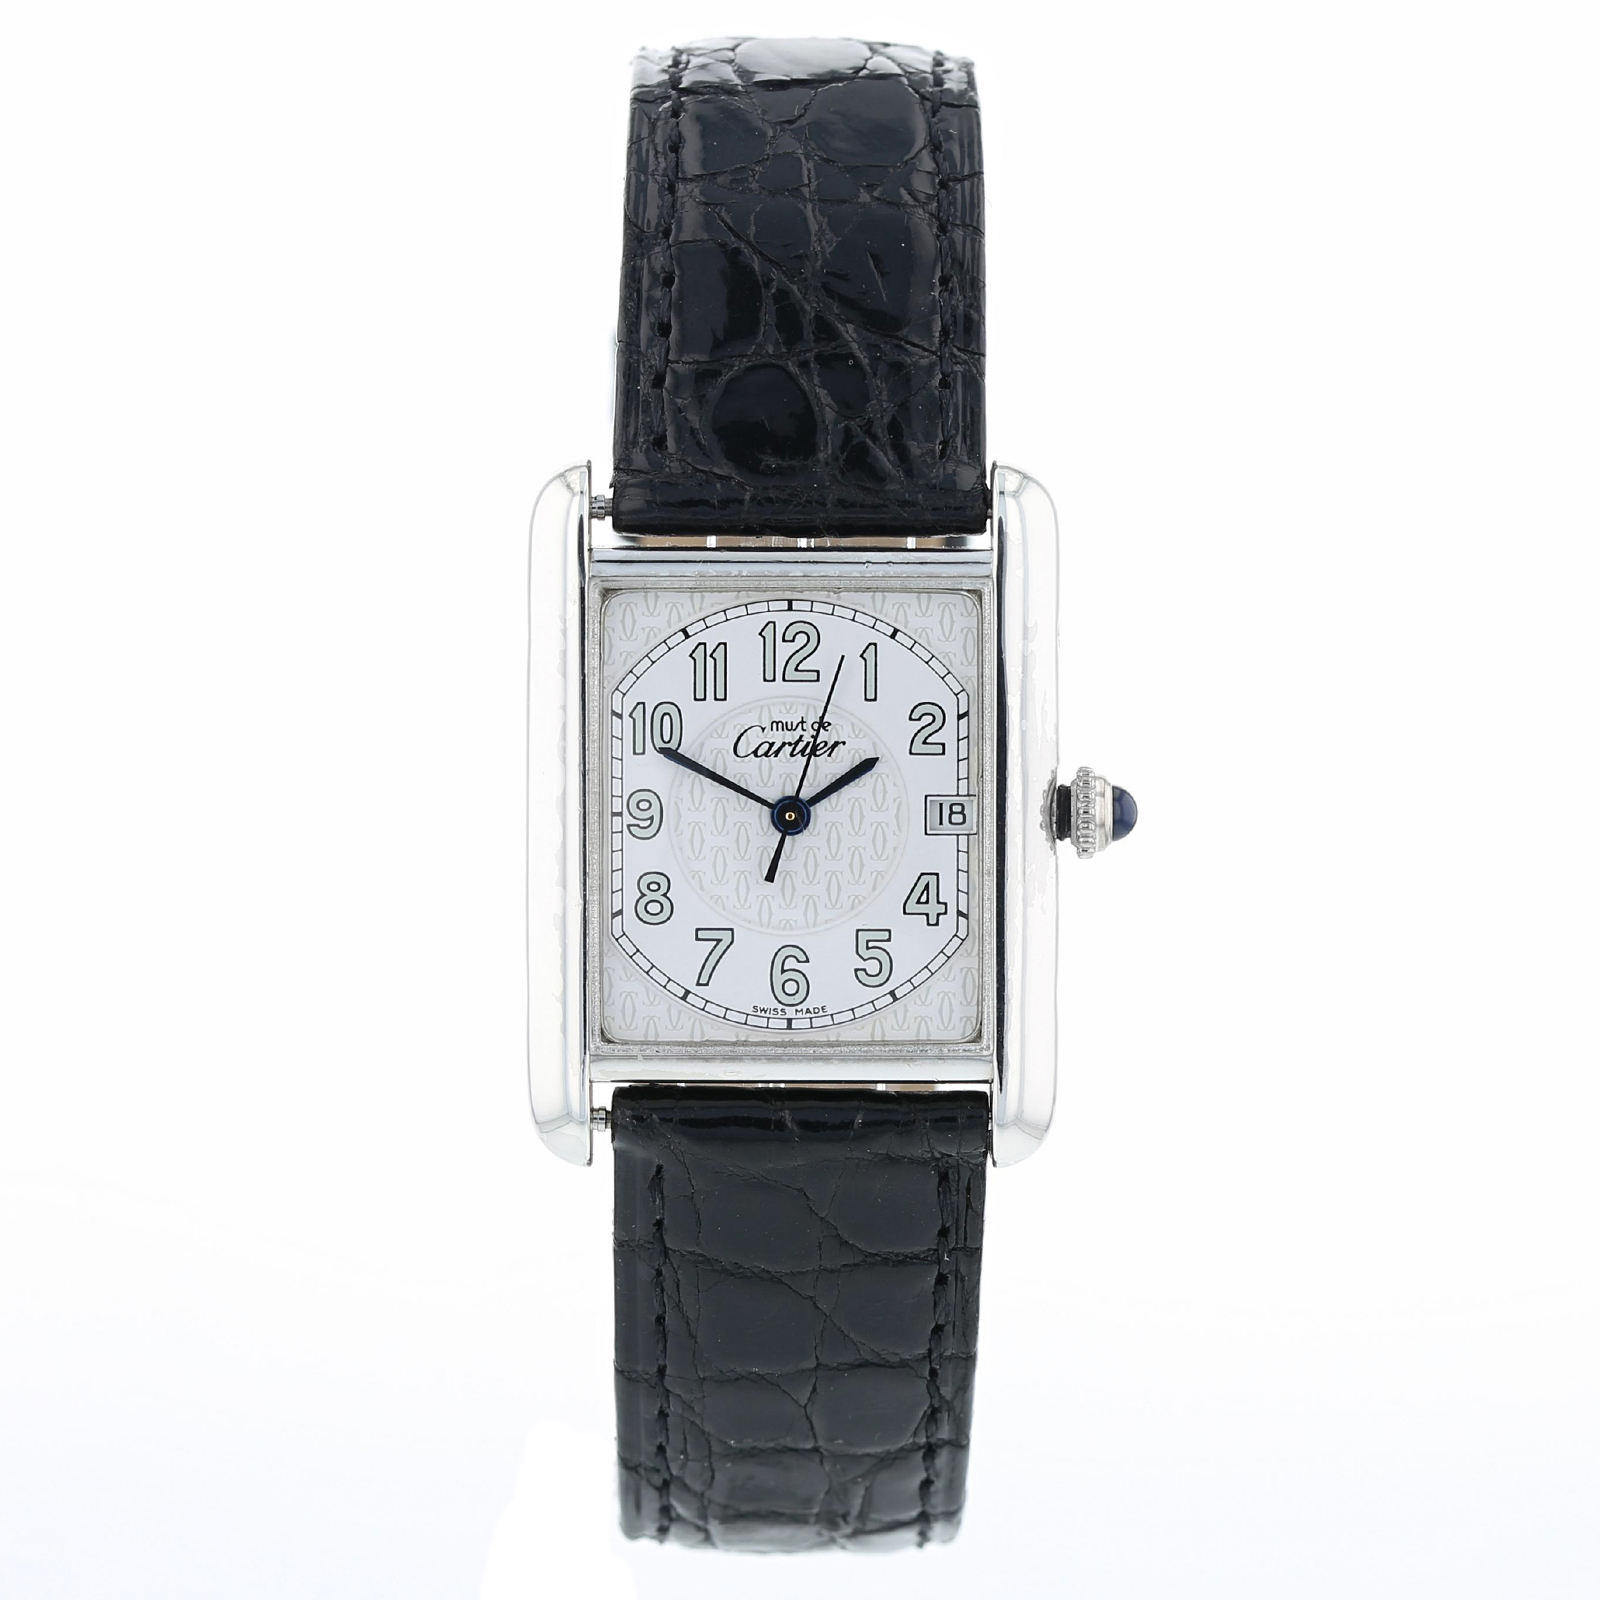 e7a4f77db61 Pre-Owned Tank Must de Cartier Mens Watch